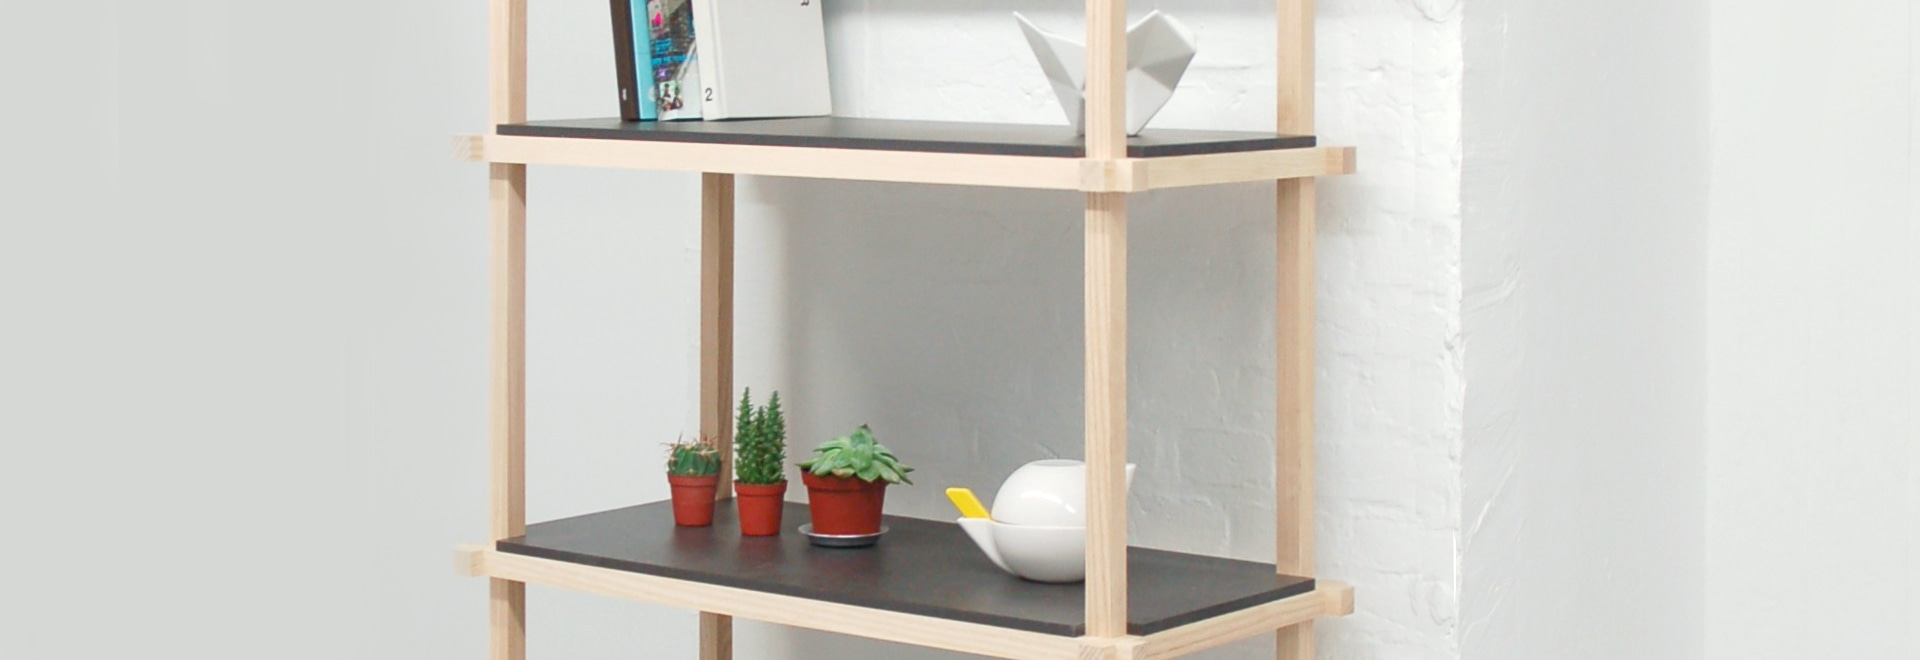 STOCKHOLM 2015: BIG DESIGN, MINIMAL FUSS FROM MAKERS WITH AGENDAS